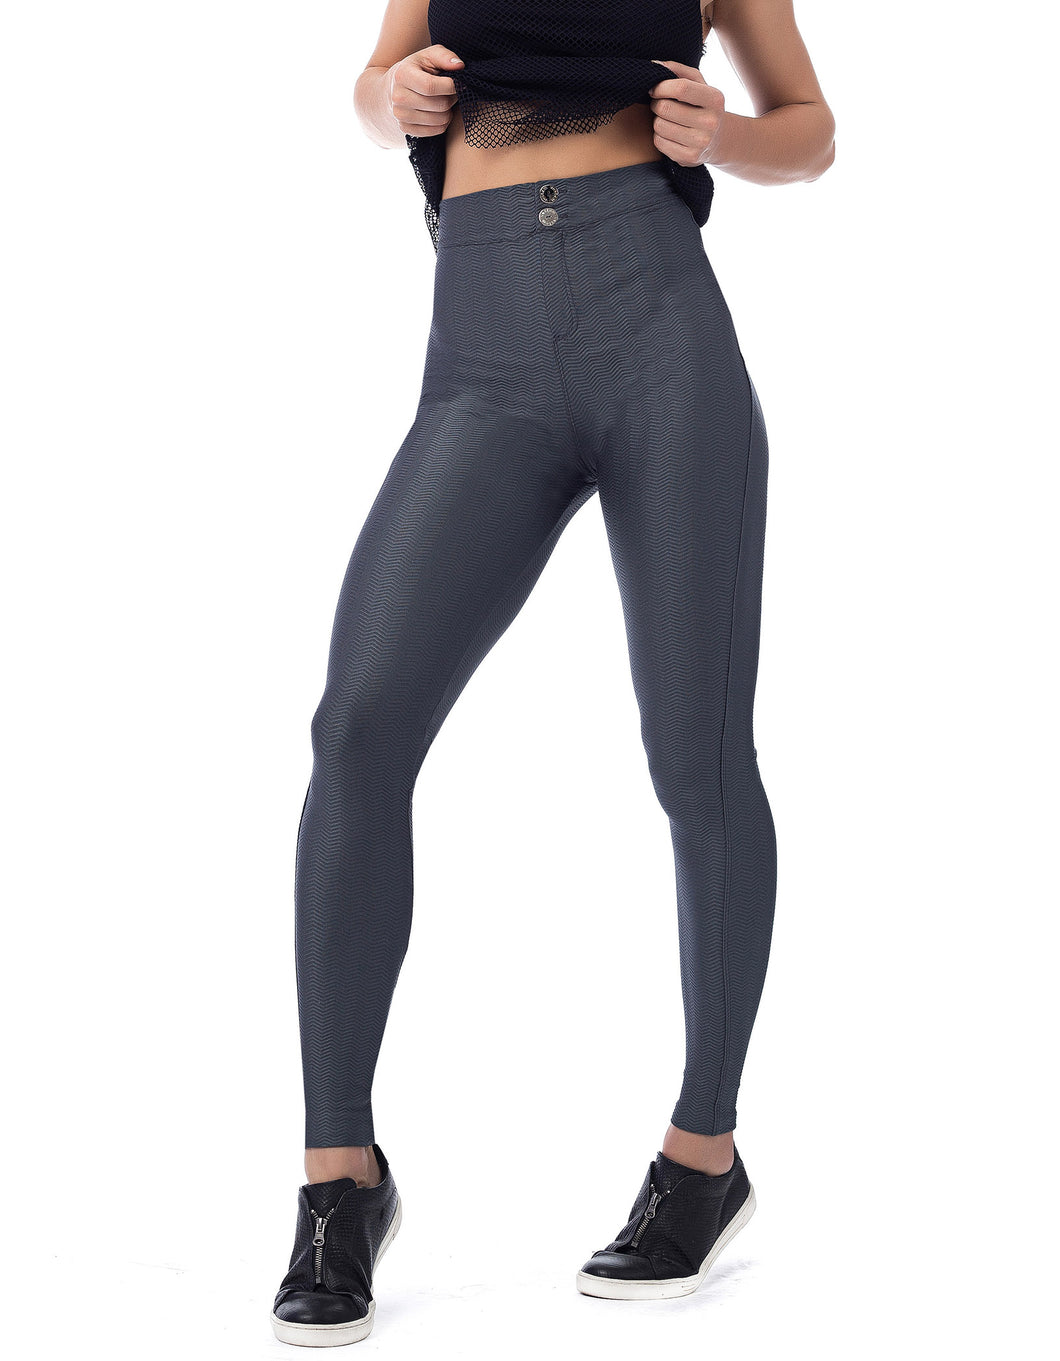 Gray Textured High Waist Legging